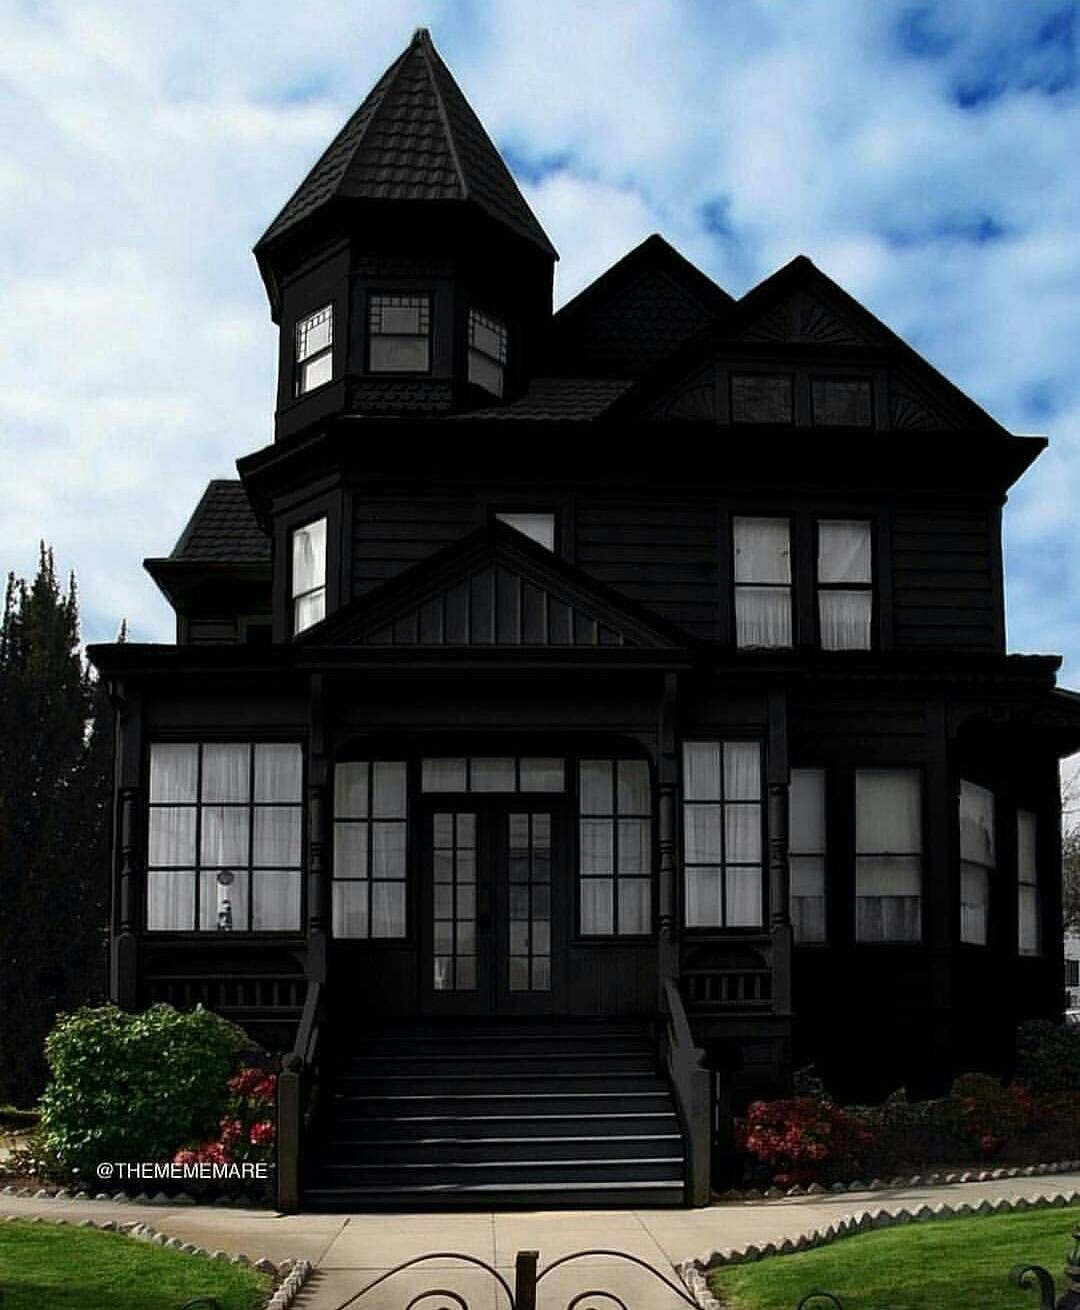 Wonderful black exterior on a classic Victorian